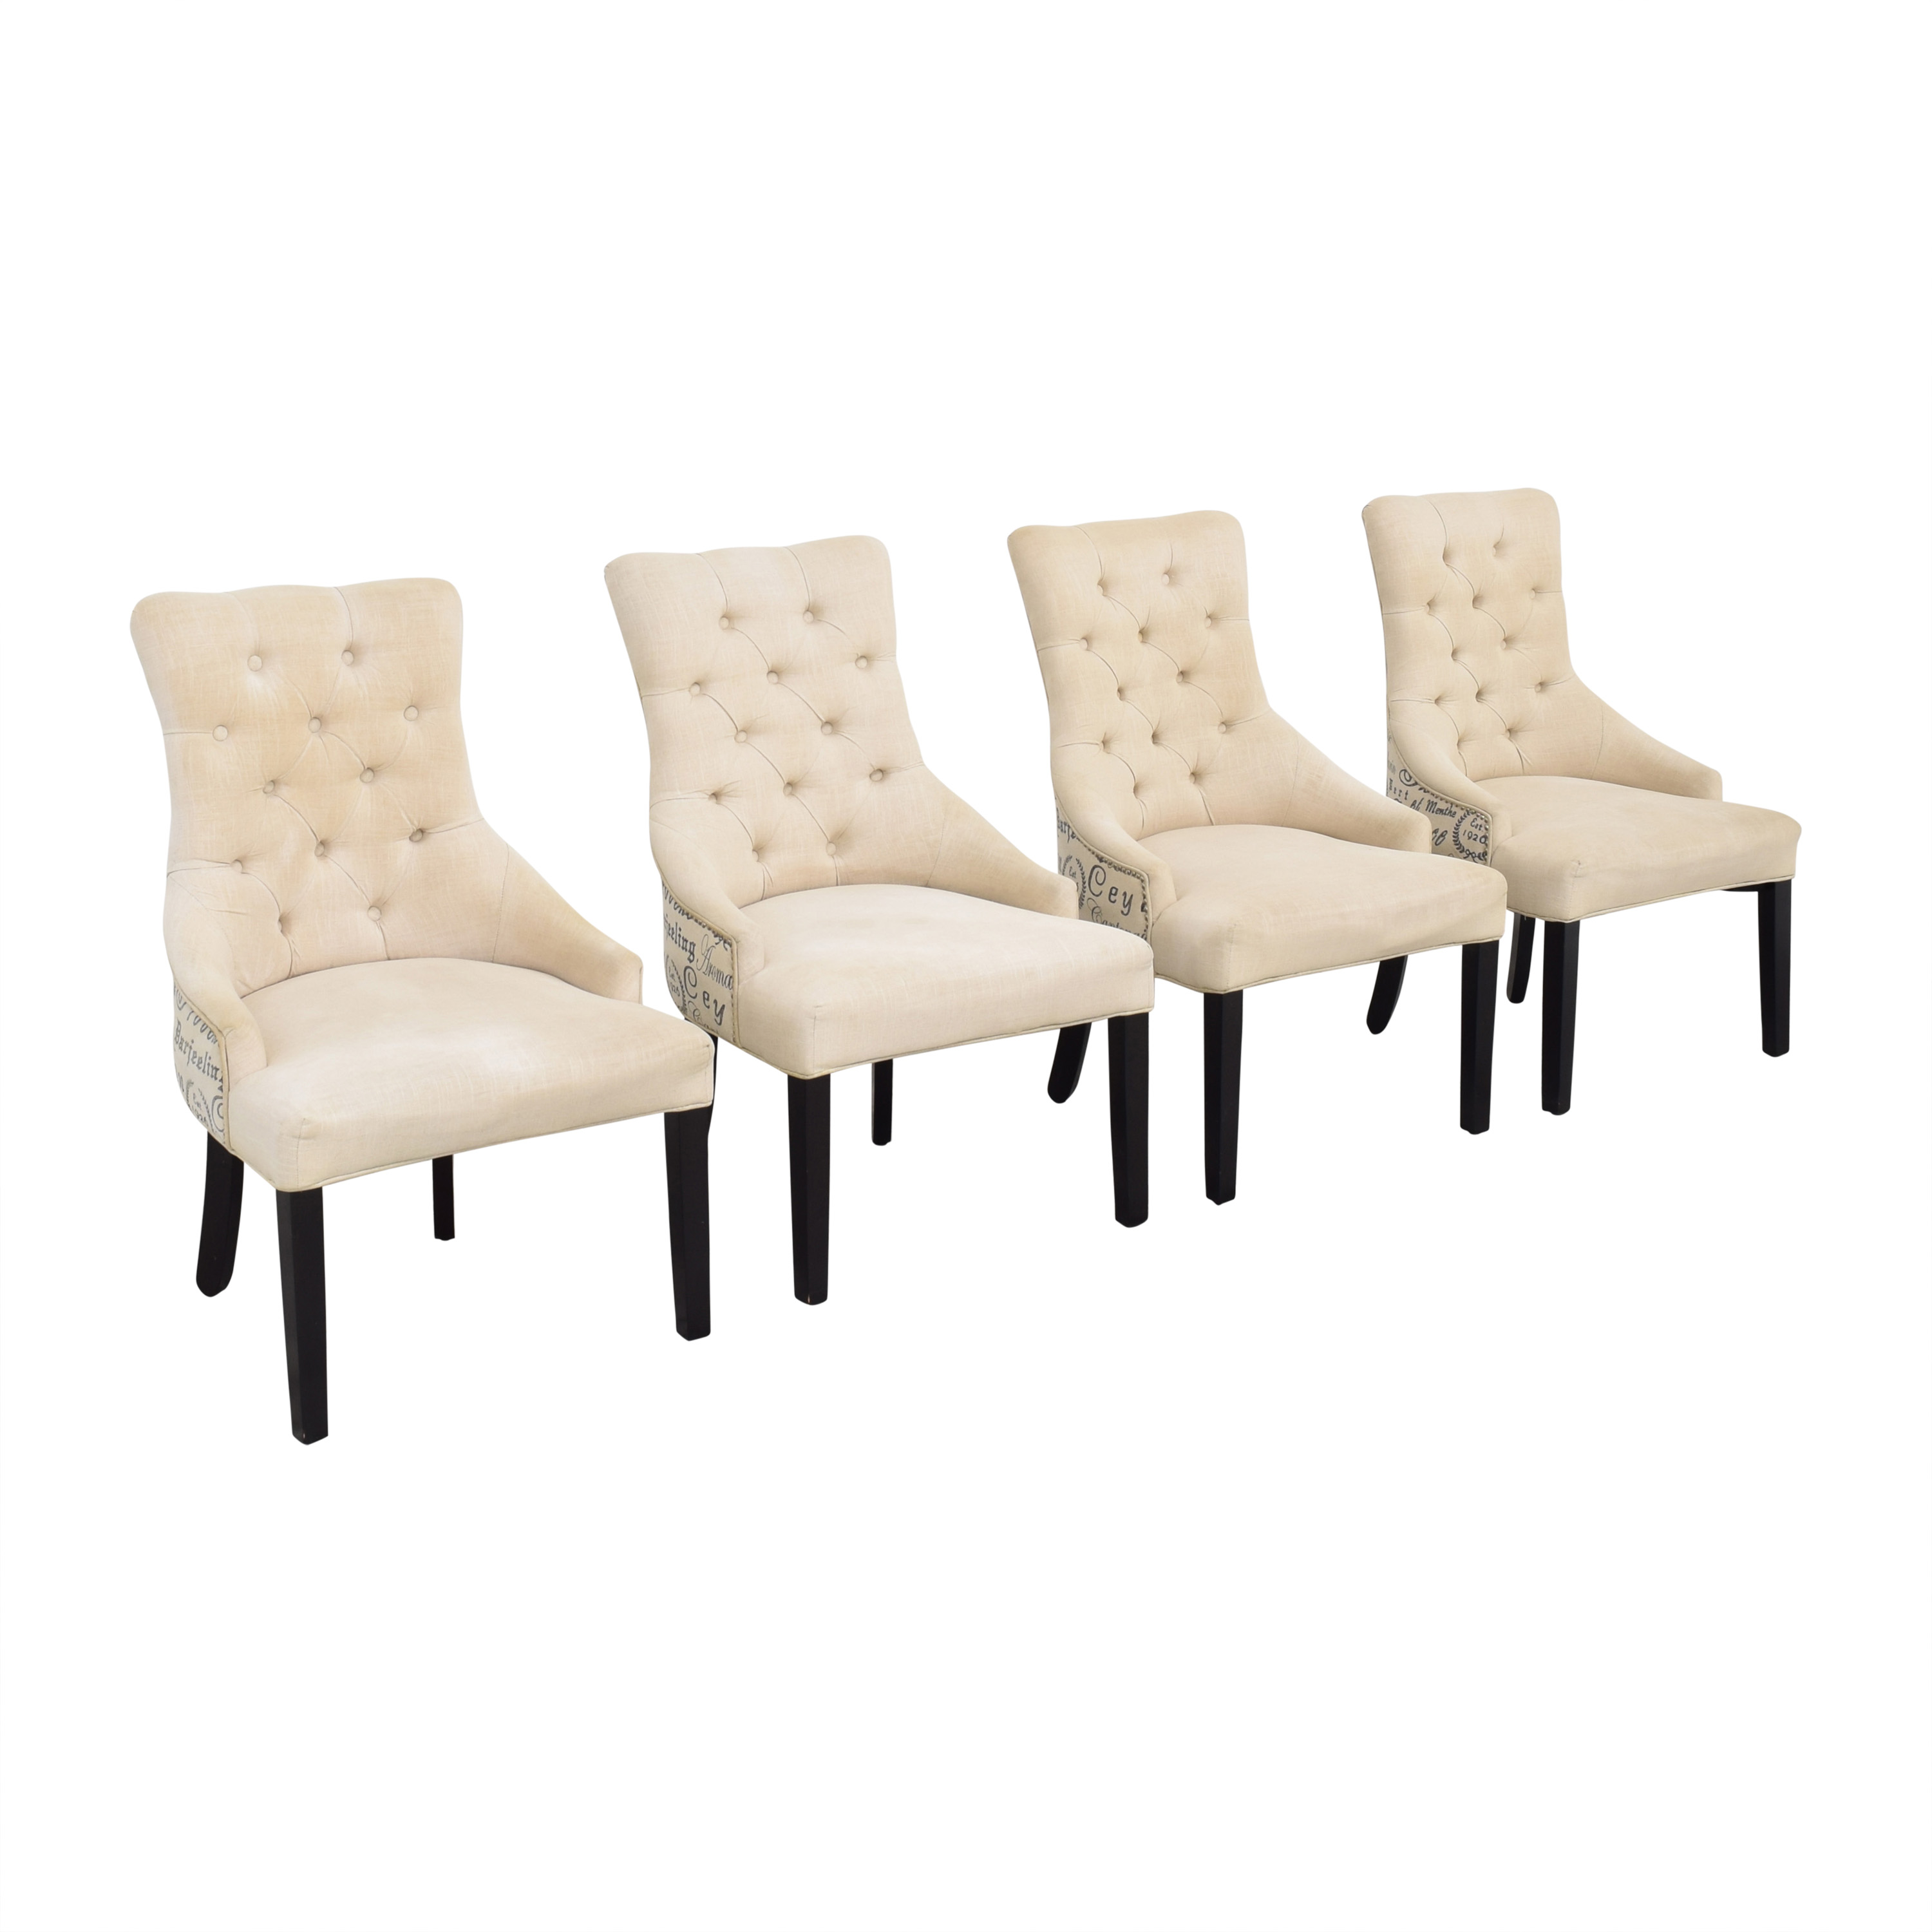 Macy's Macy's Marais Dining Parsons Chairs off white & dark brown